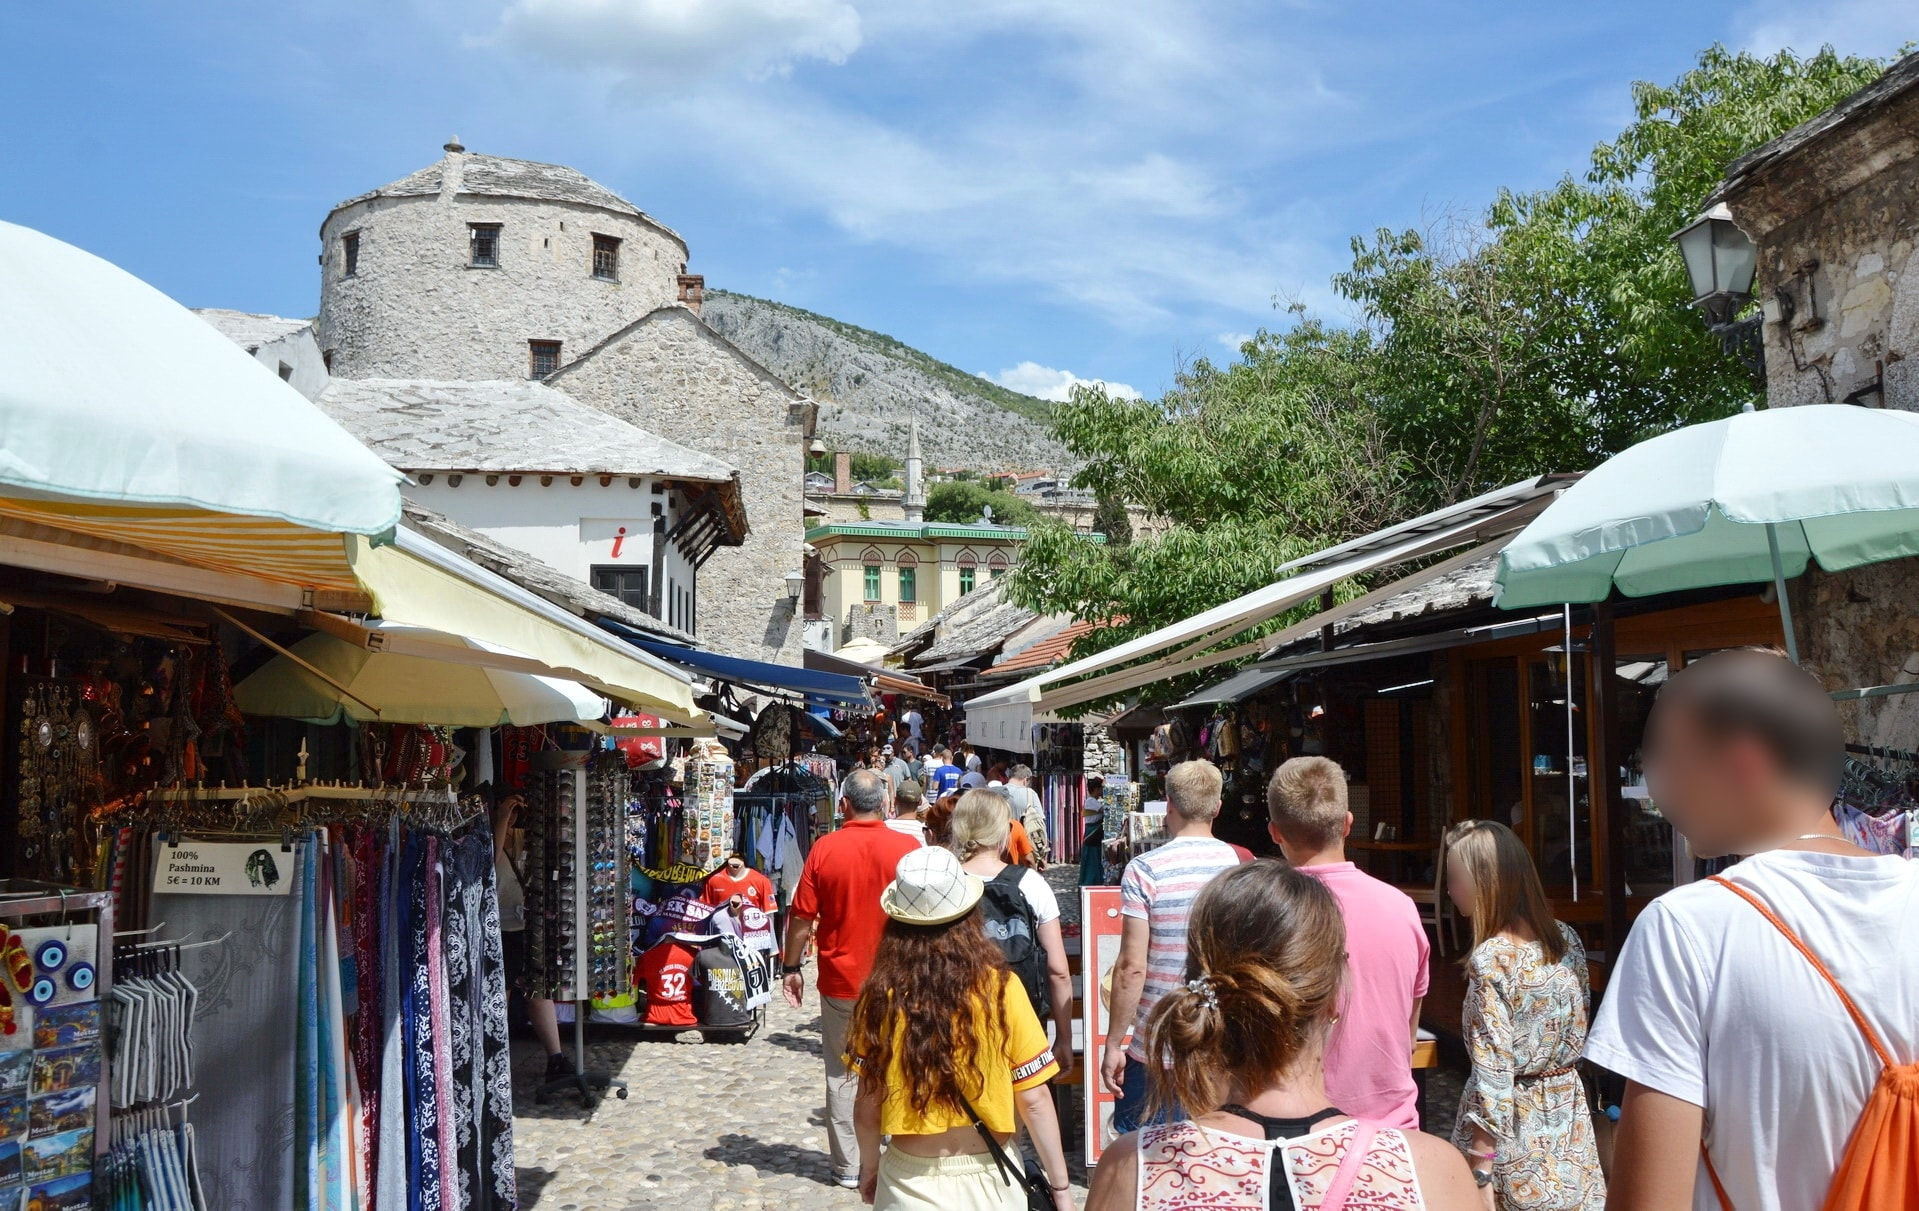 The Old Town of Mostar is filled with local vendors selling their goods